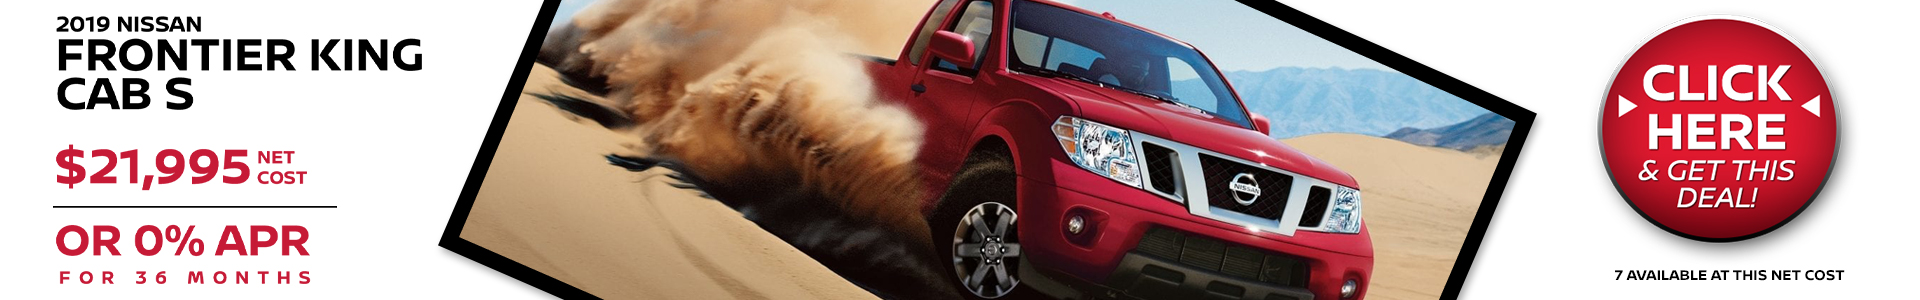 Mossy Nissan - Nissan Frontier $21,995 Purchase